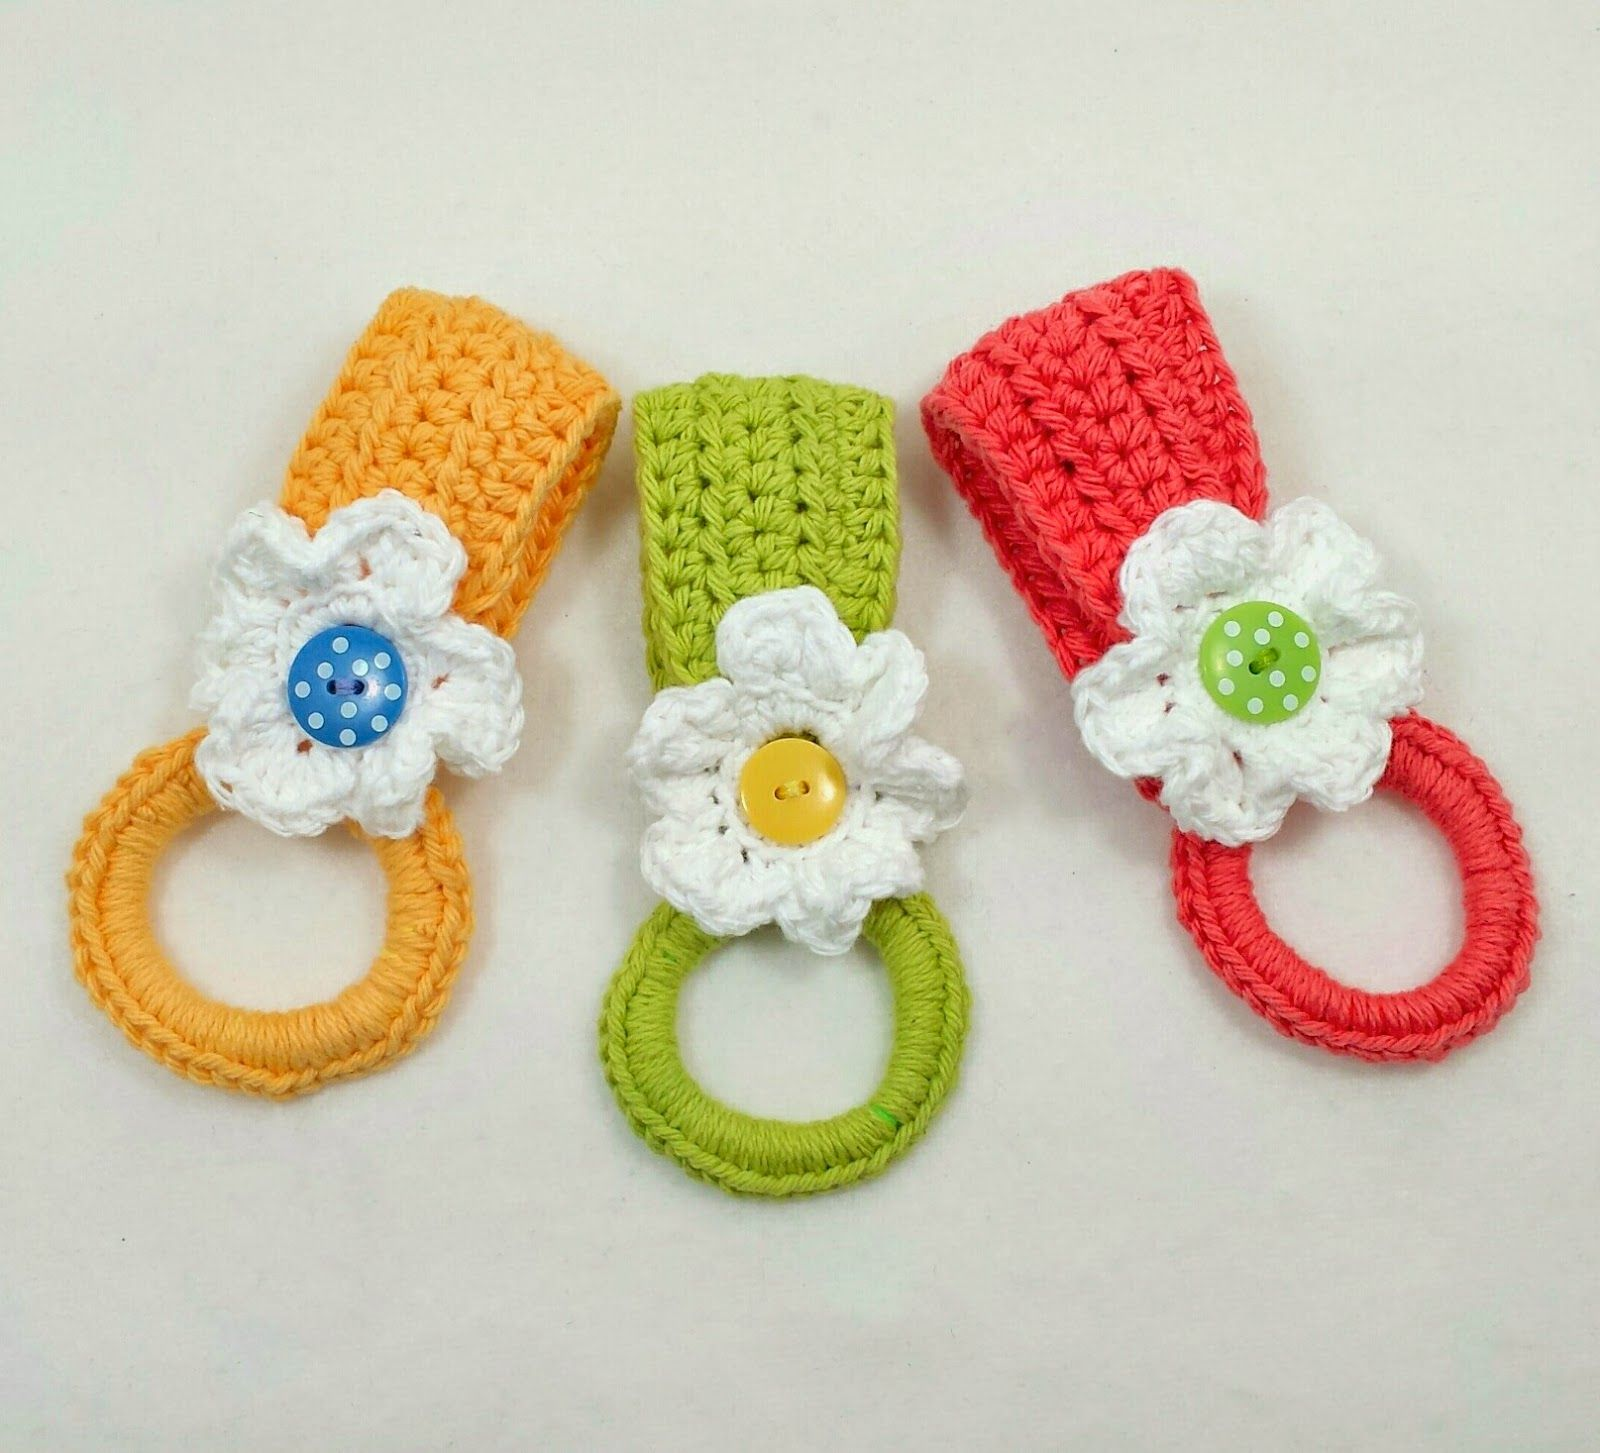 Kitchen hand towel holder - Daisy Towel Holder Fun And Easy To Make Free Crochet Pattern